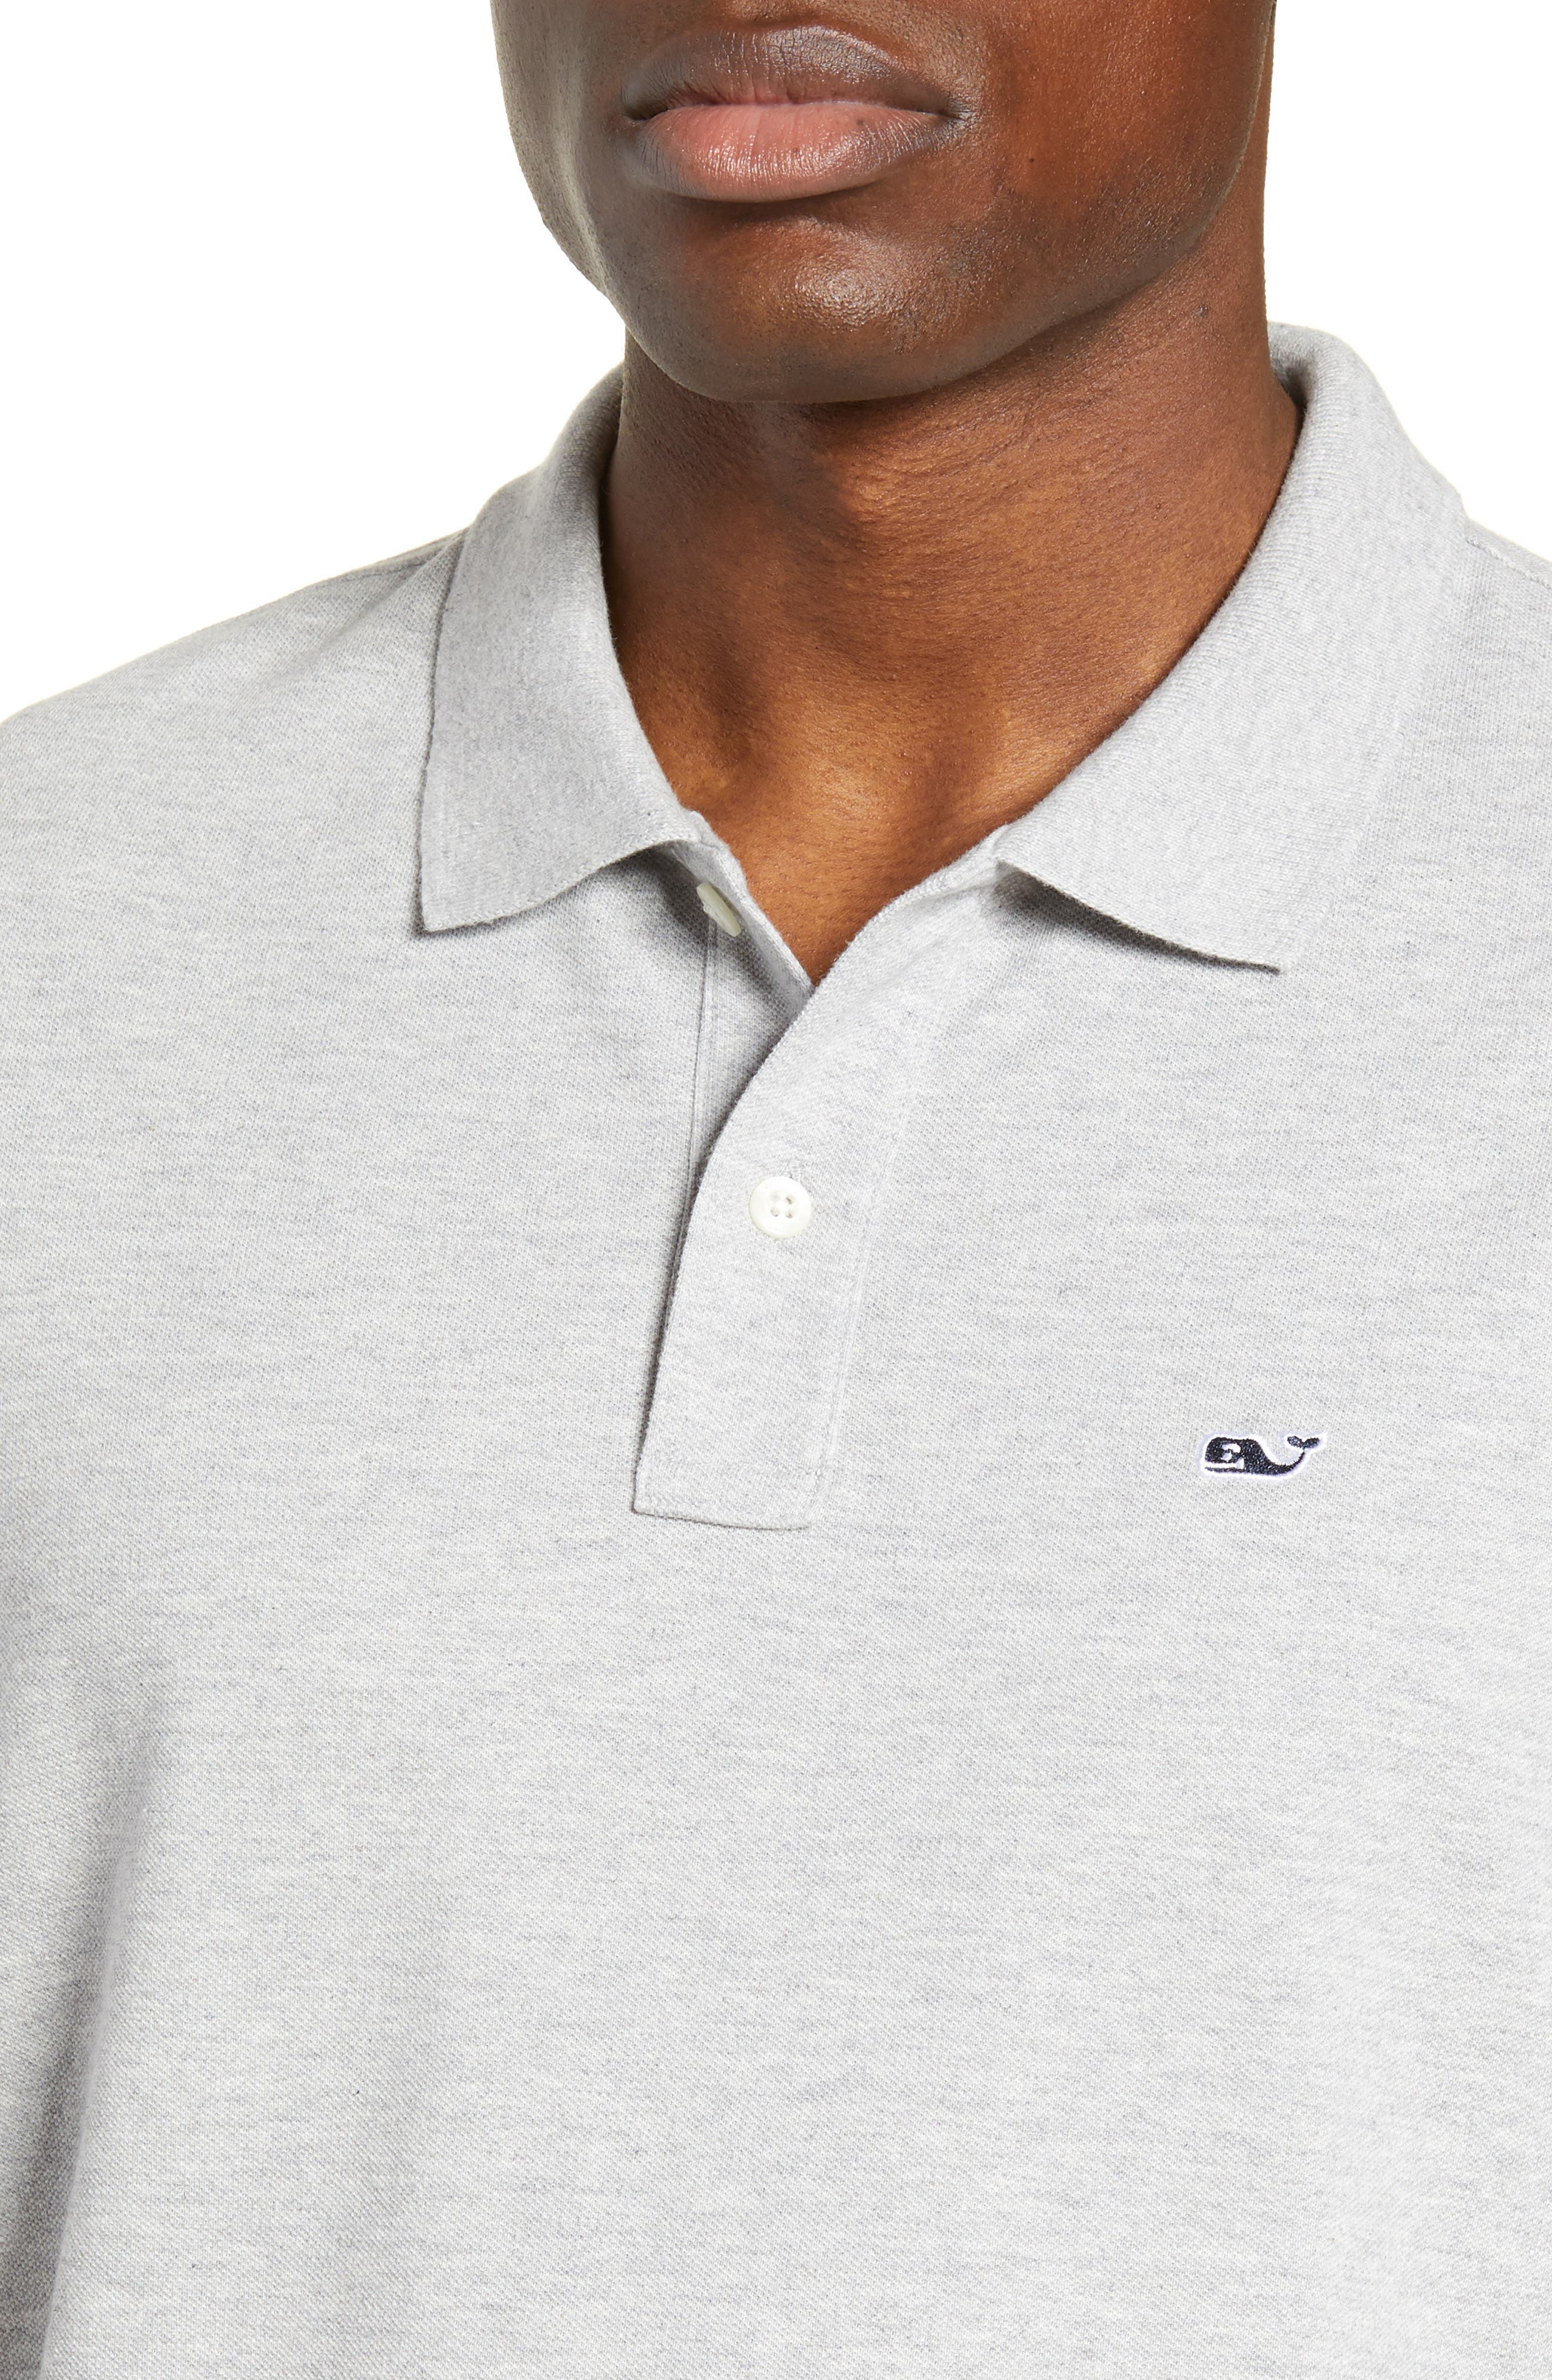 VINEYARD VINES, Regular Fit Stretch Piqué Polo, Alternate thumbnail 4, color, LIGHT GRAY HEATHER